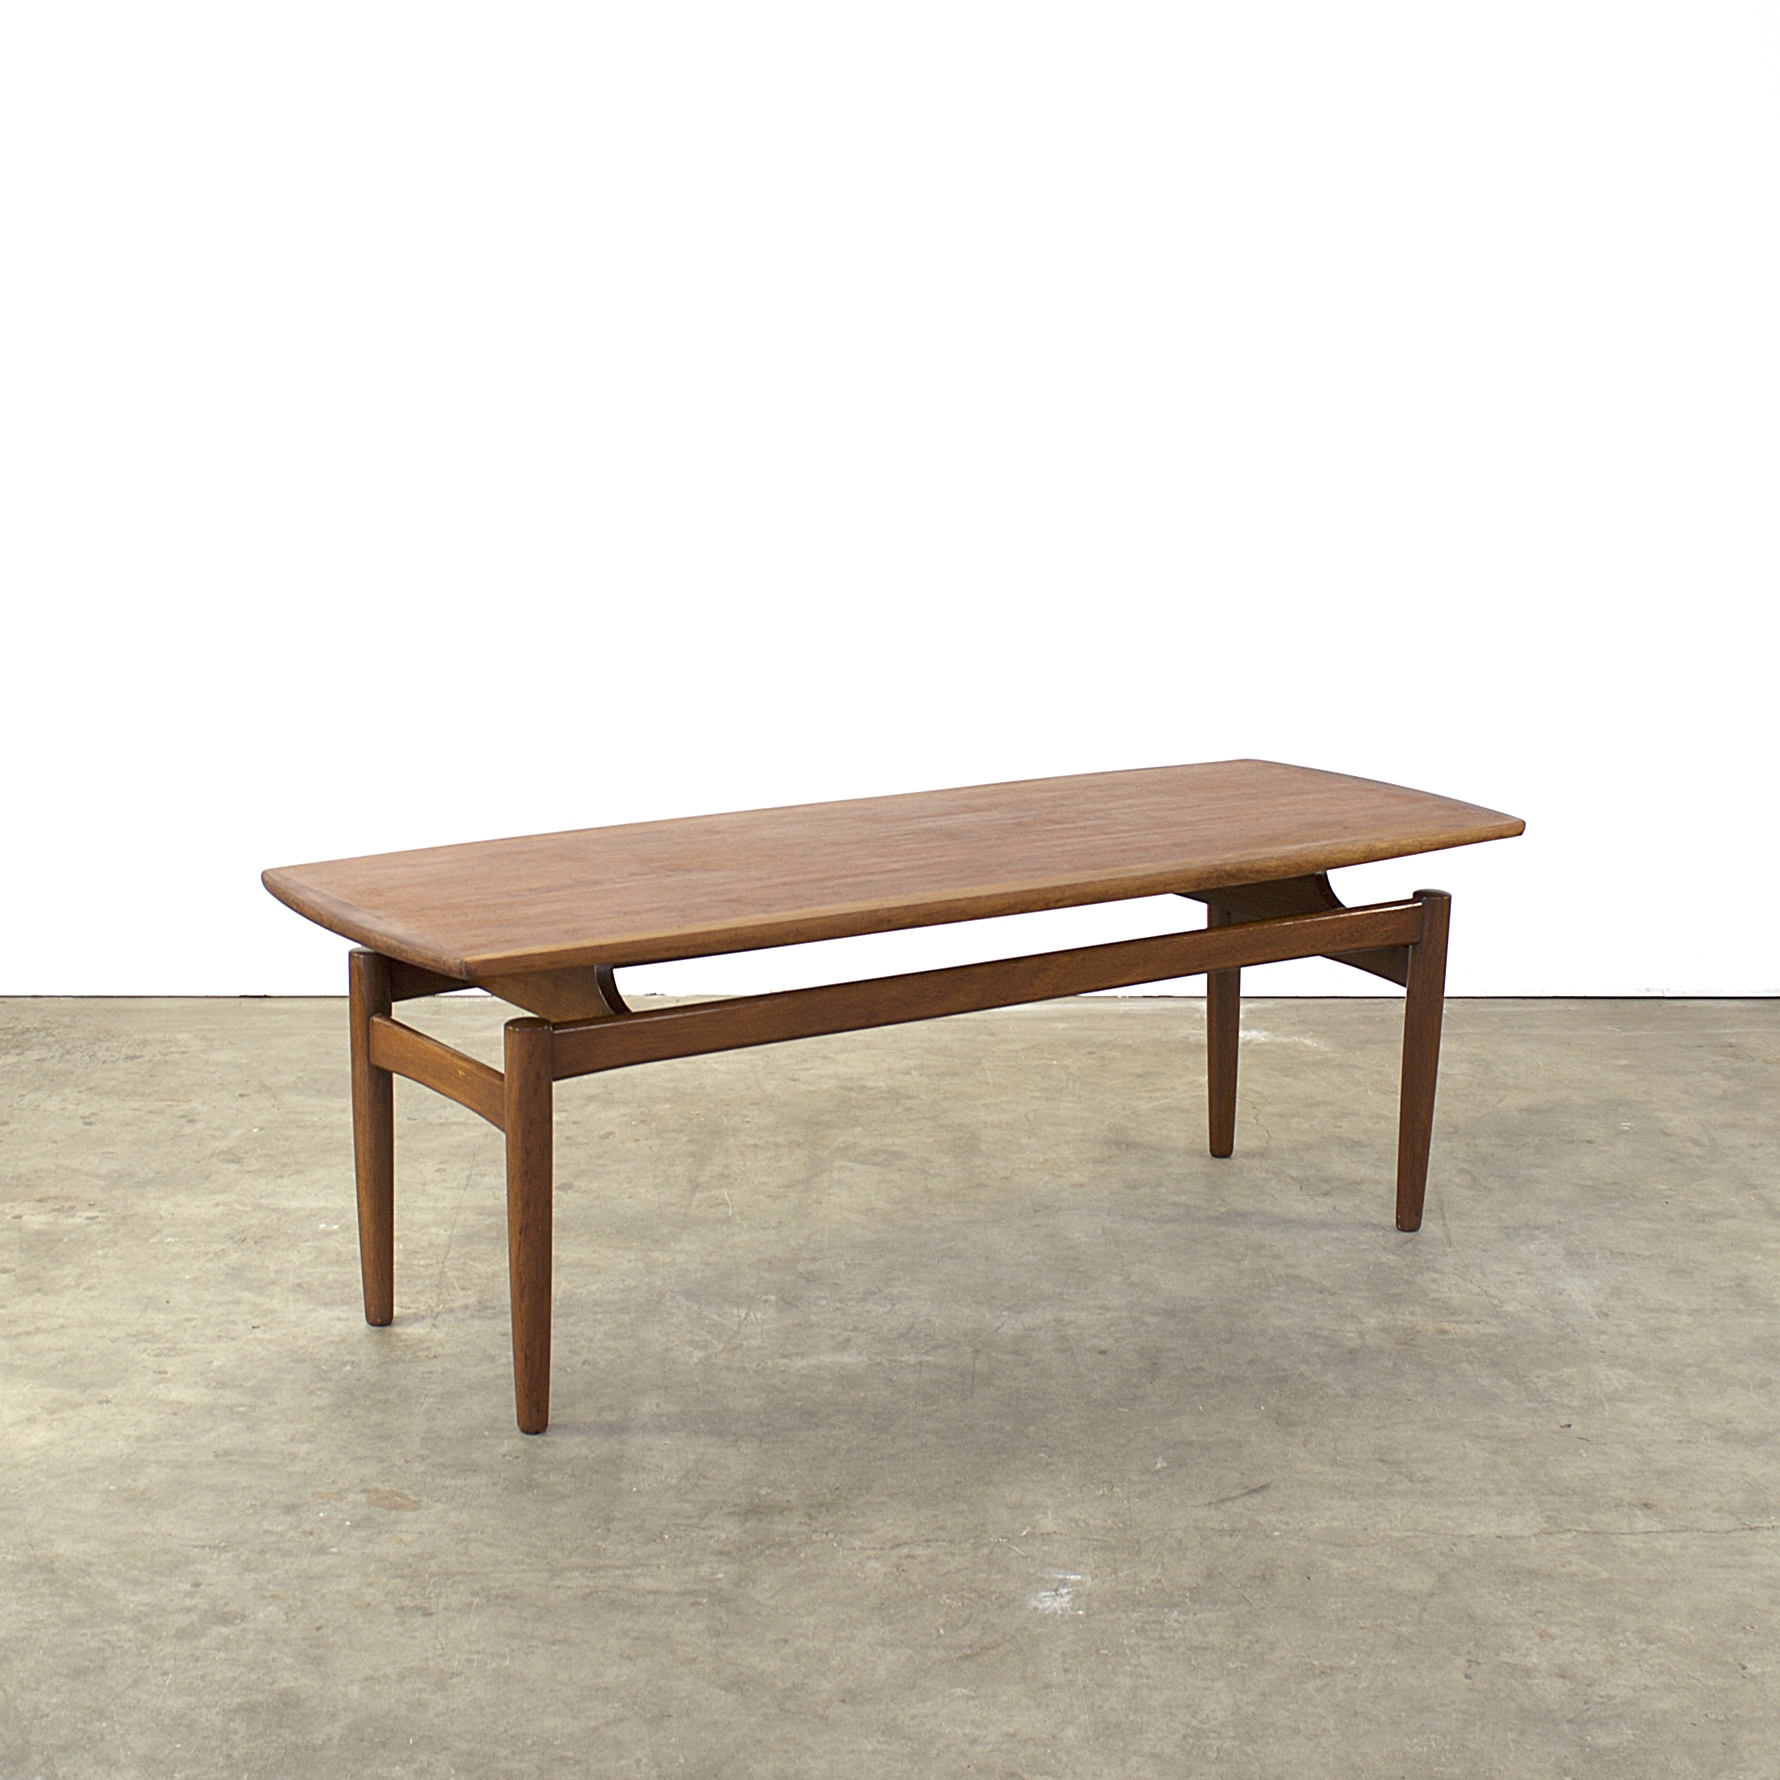 60 s coffee table scandinavian design